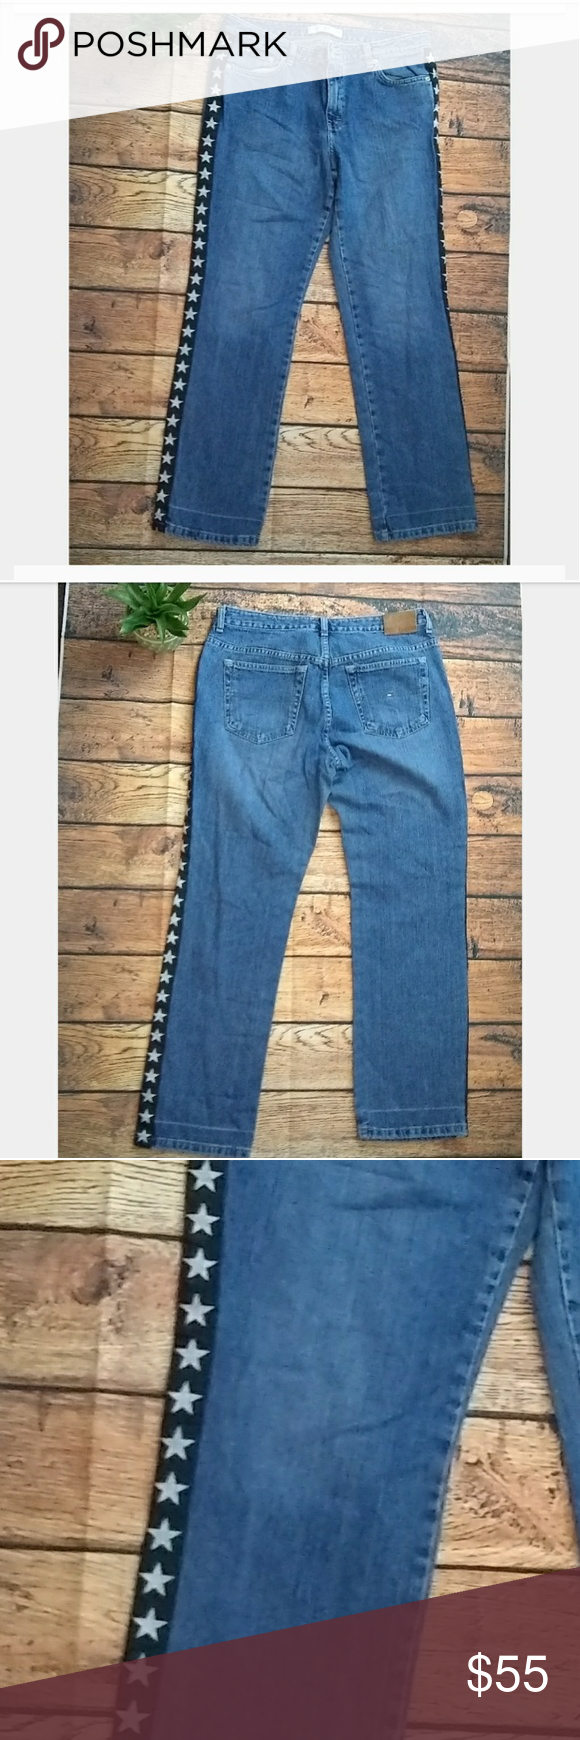 9cd312647 Vintage Tommy Hilfiger jean stars on the side Vintage Tommy Hilfiger jean  stars on the side. Sz 12 aged blue slim fit. Waist 34 inches Rise 10.5  inches ...